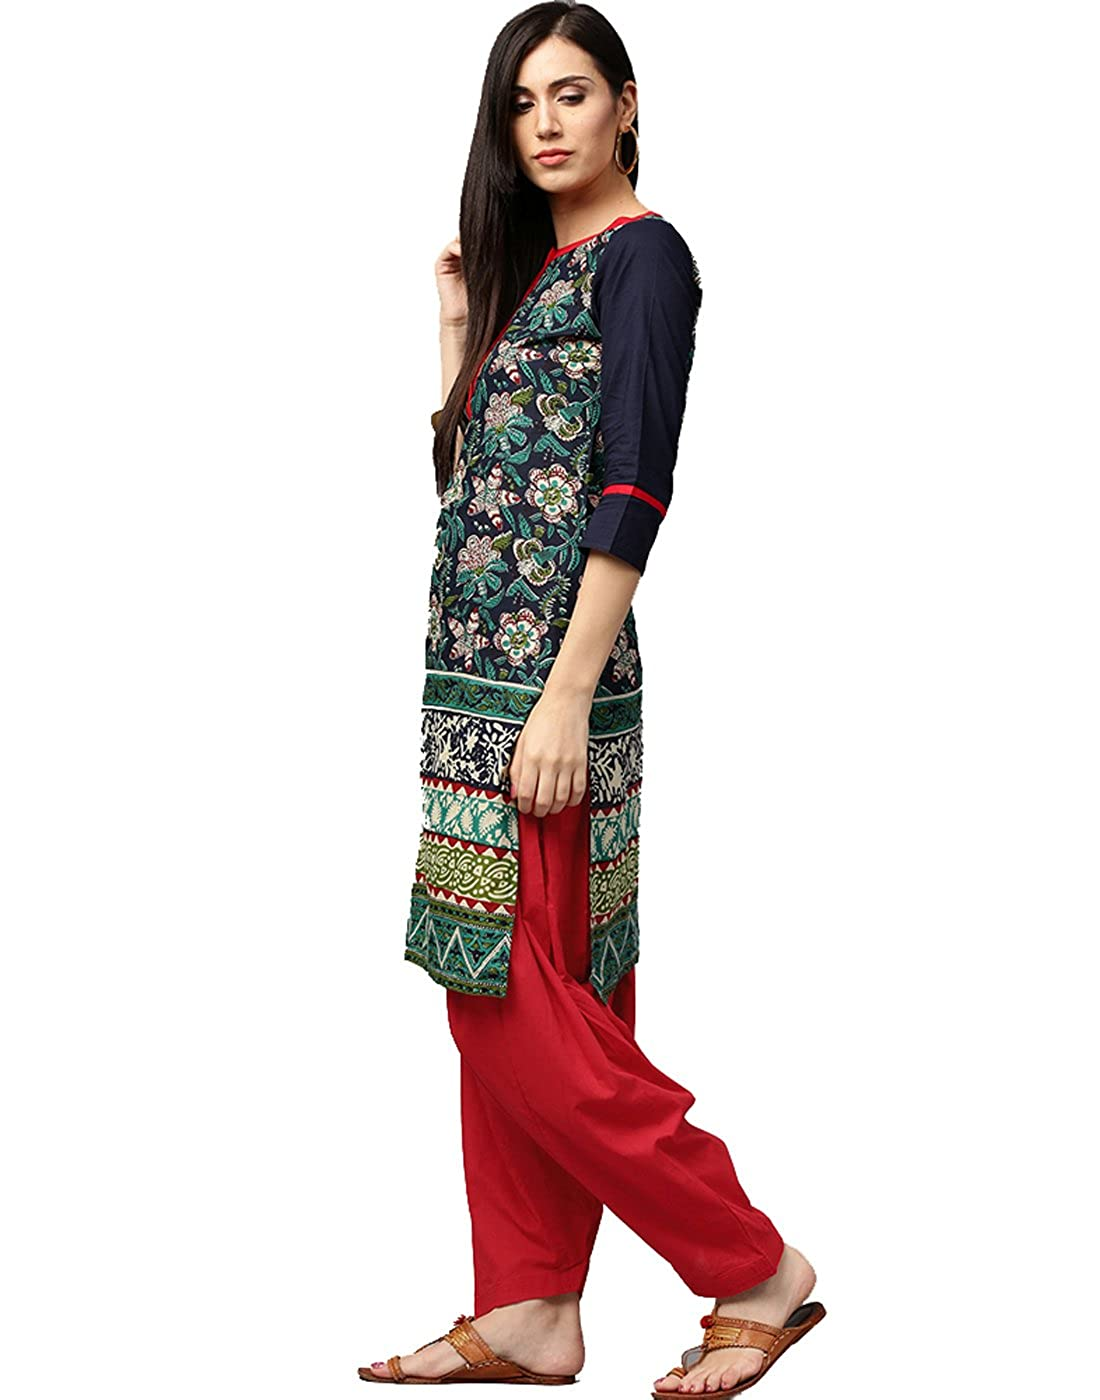 18293c2cc74 MATERIAL: Cotton FITTING TYPE & Print: Straight Fit & Floral Print SLEEVE  TYPE & NECK STYLE: 3/4th Sleeves & Round Neck DEPARTMENT: Women